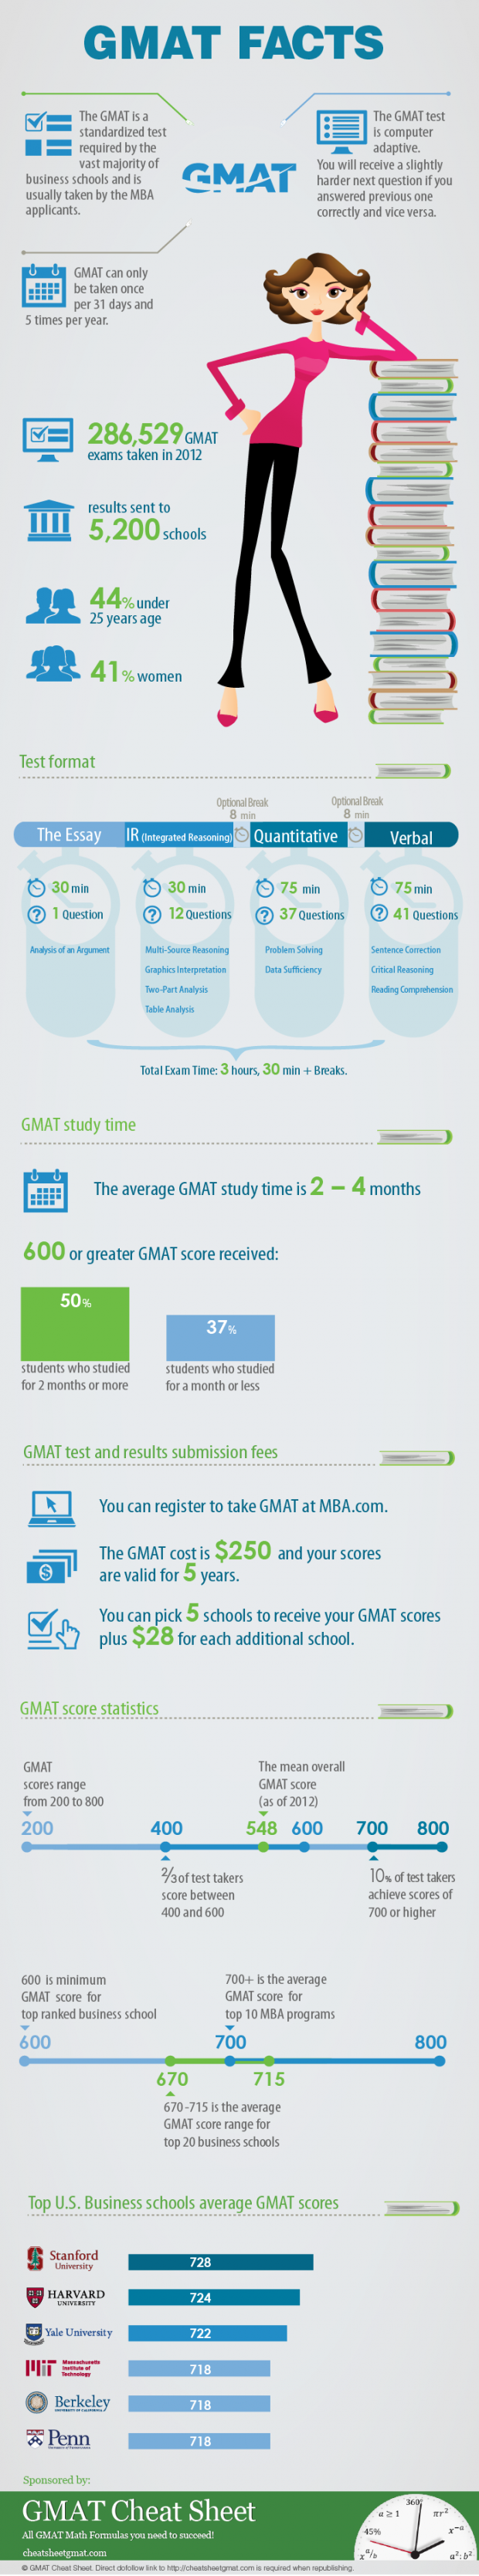 gmat-facts-infographic